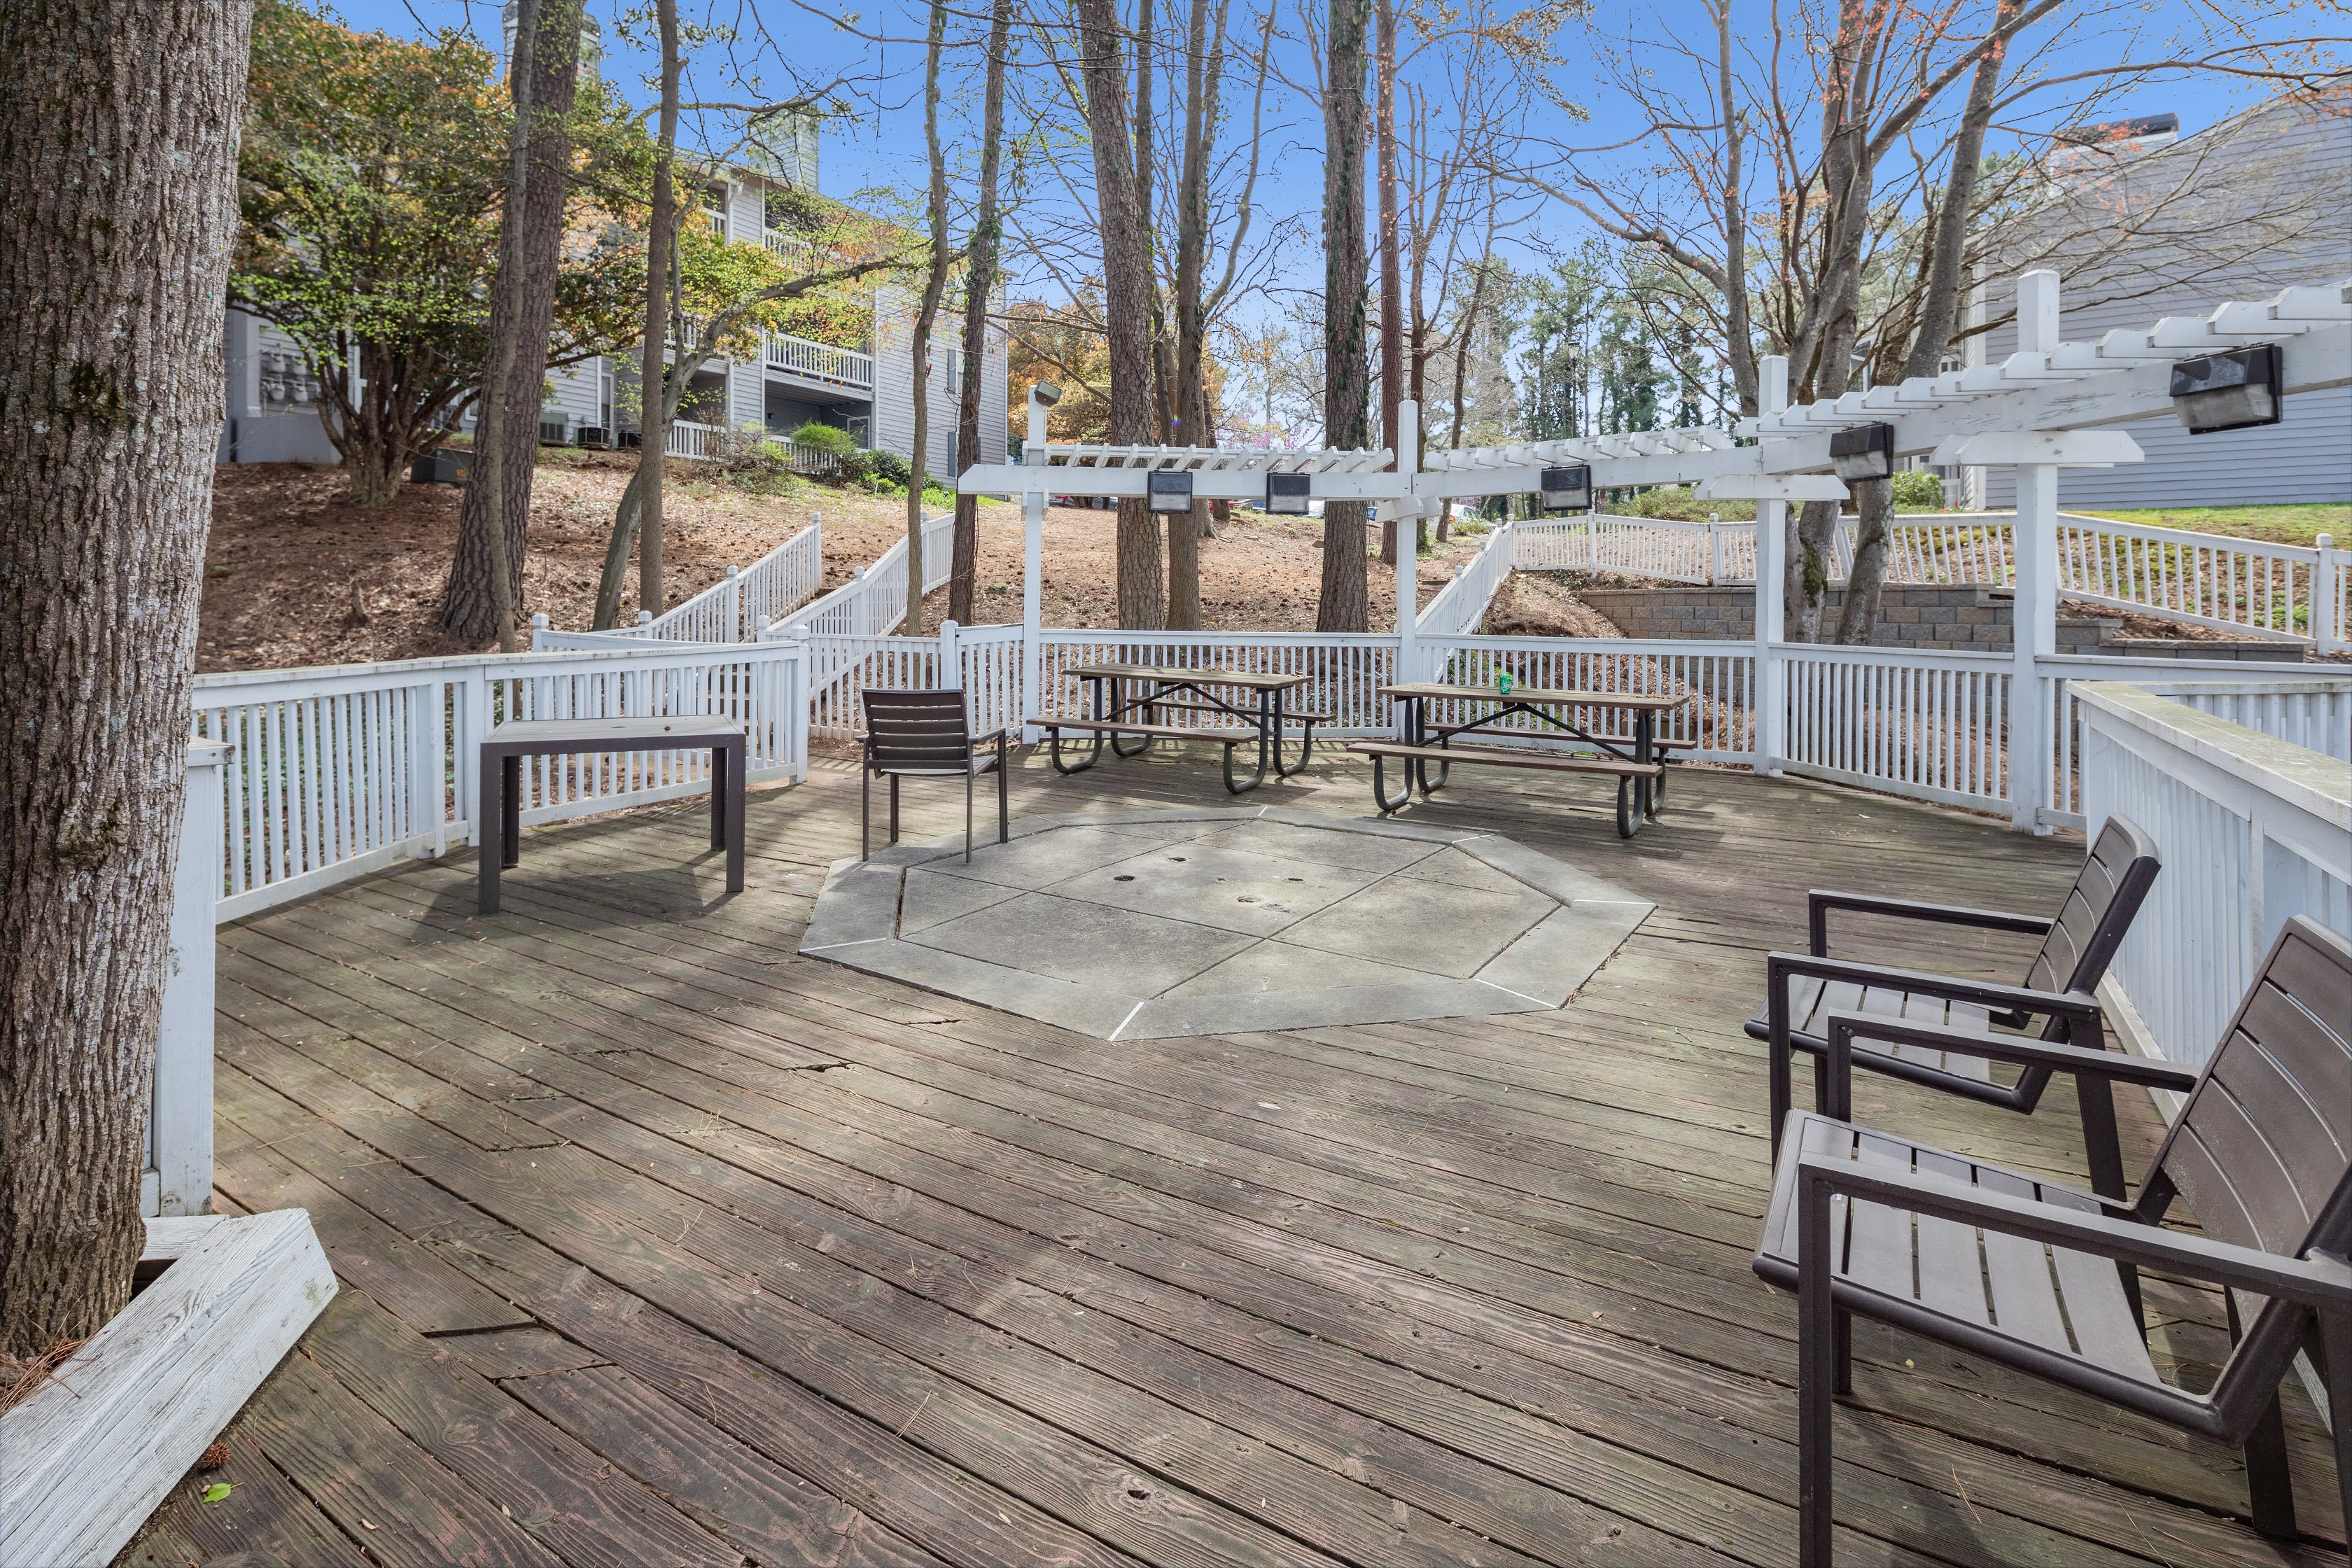 An outdoor resident seating area at The Everette at East Cobb in Marietta, Georgia